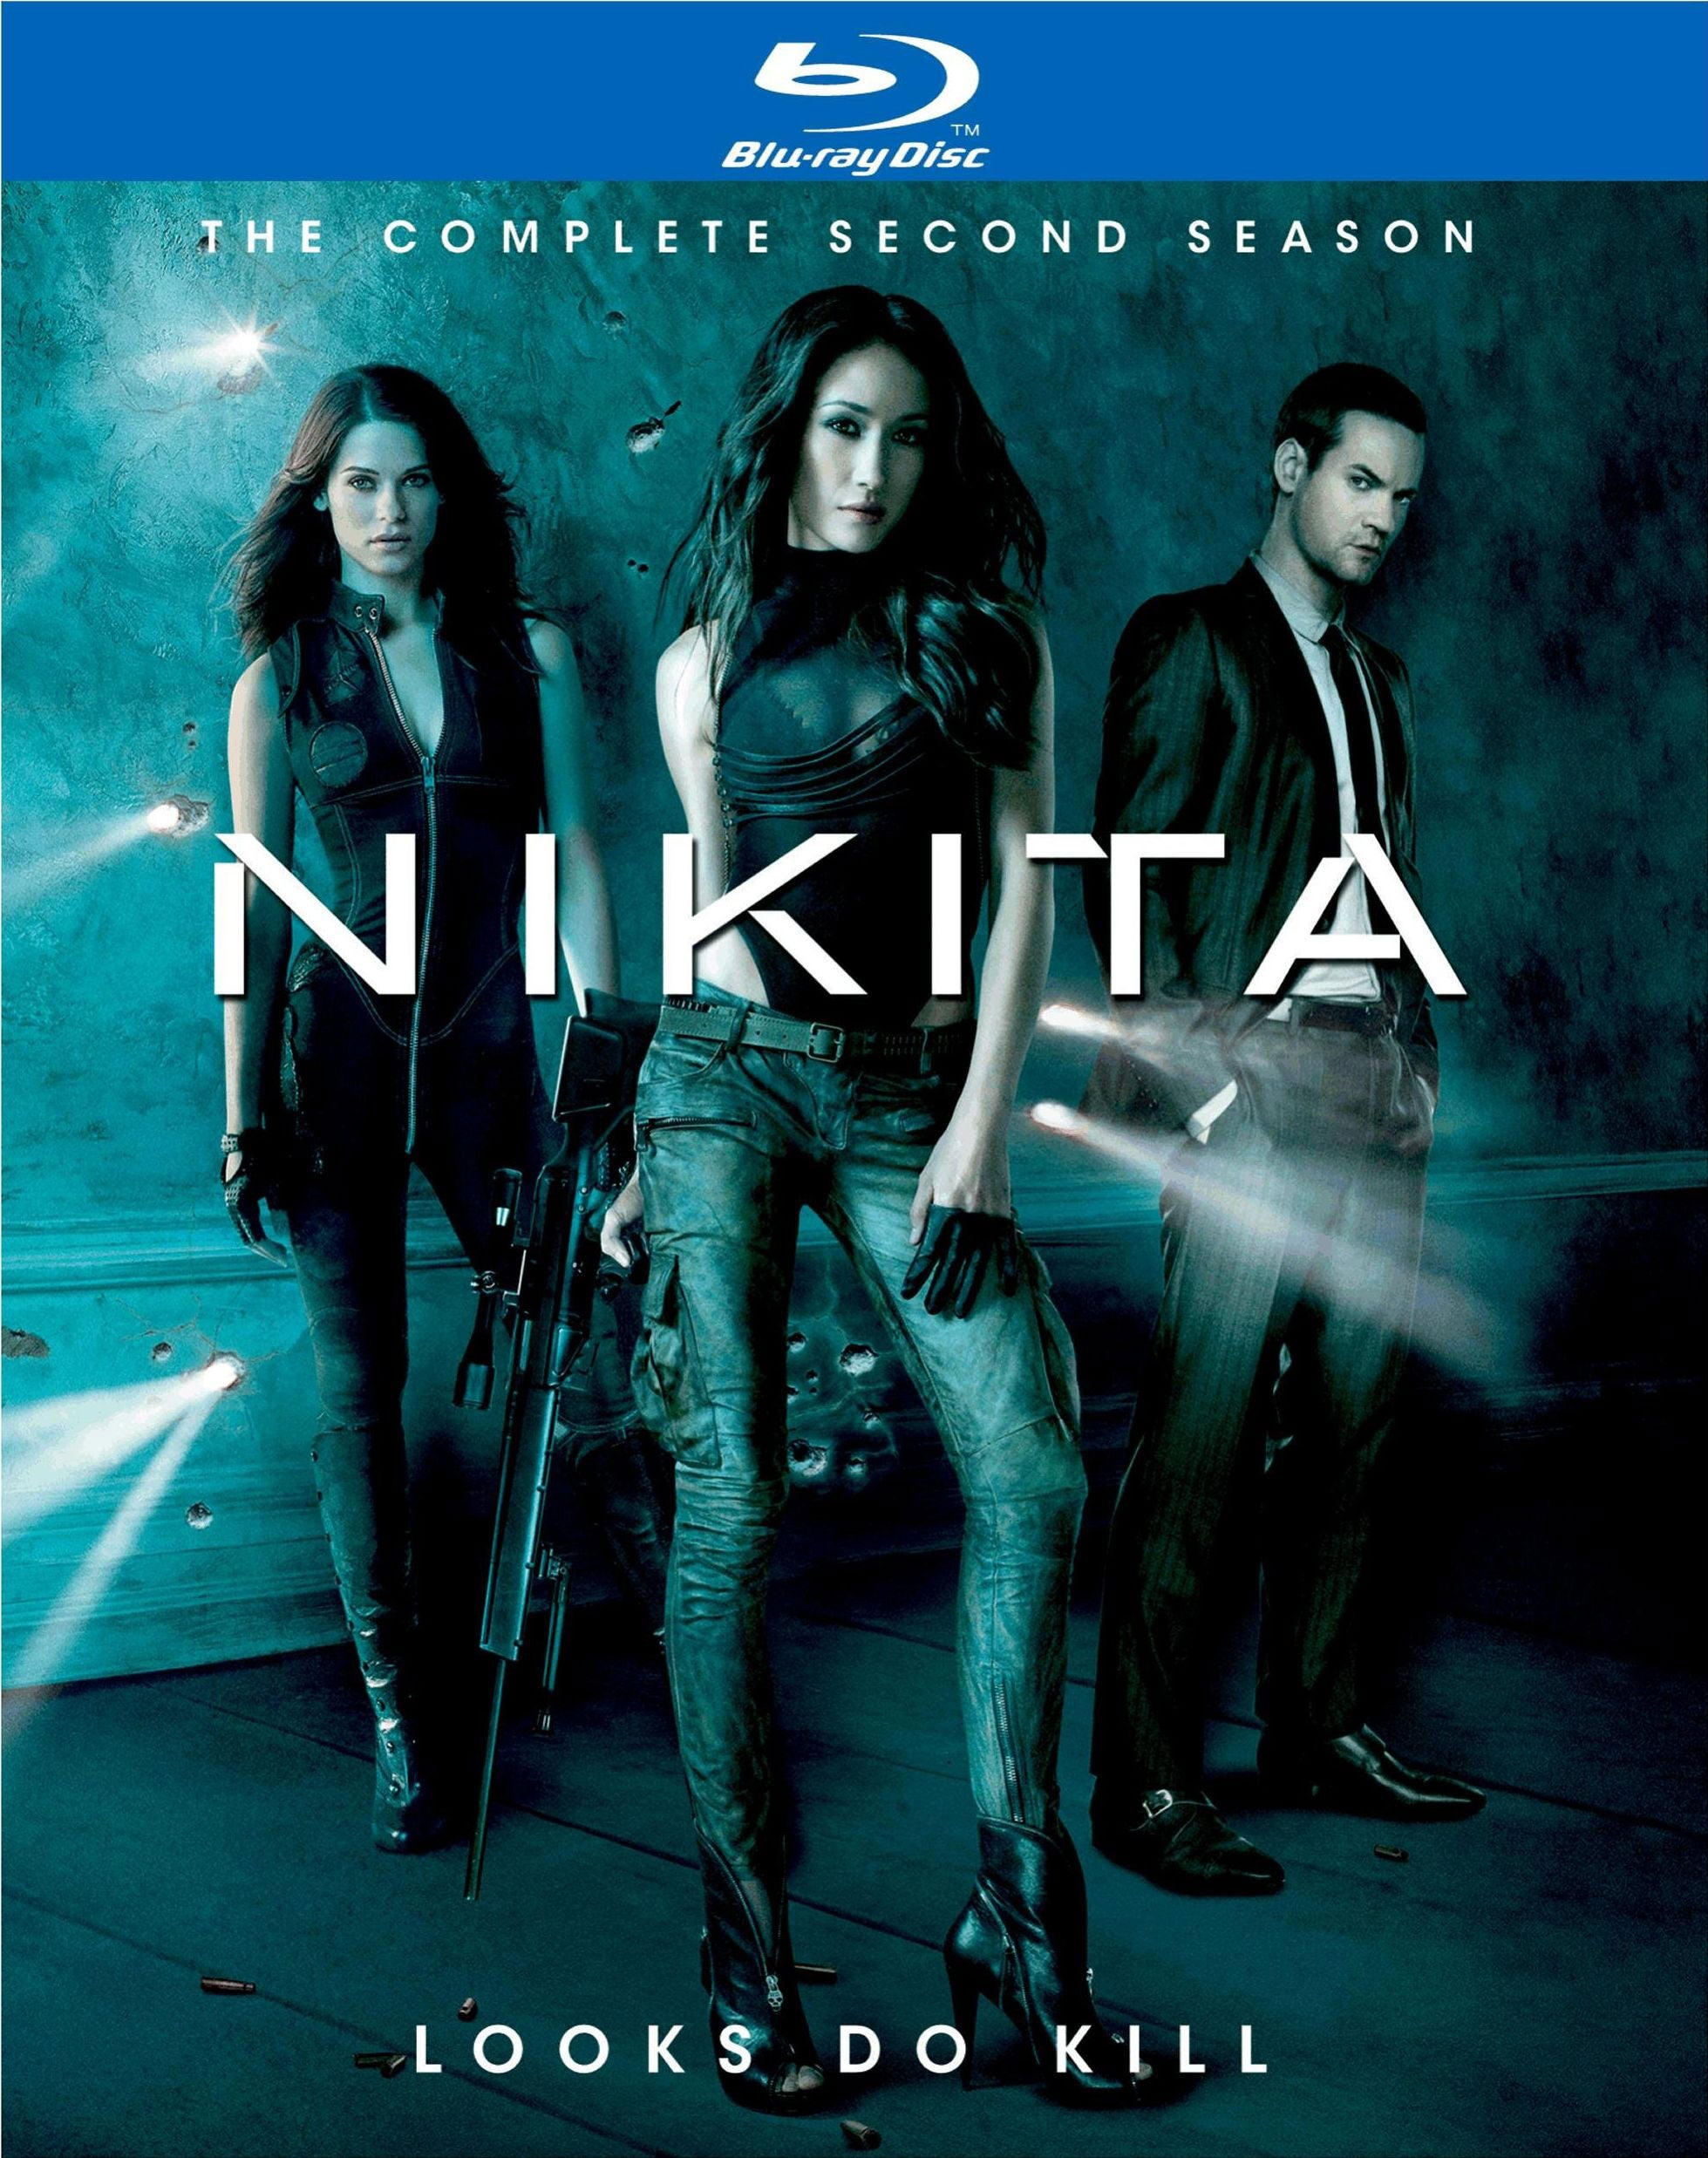 Nikita: The Complete Second Season (Blu-ray Disc)